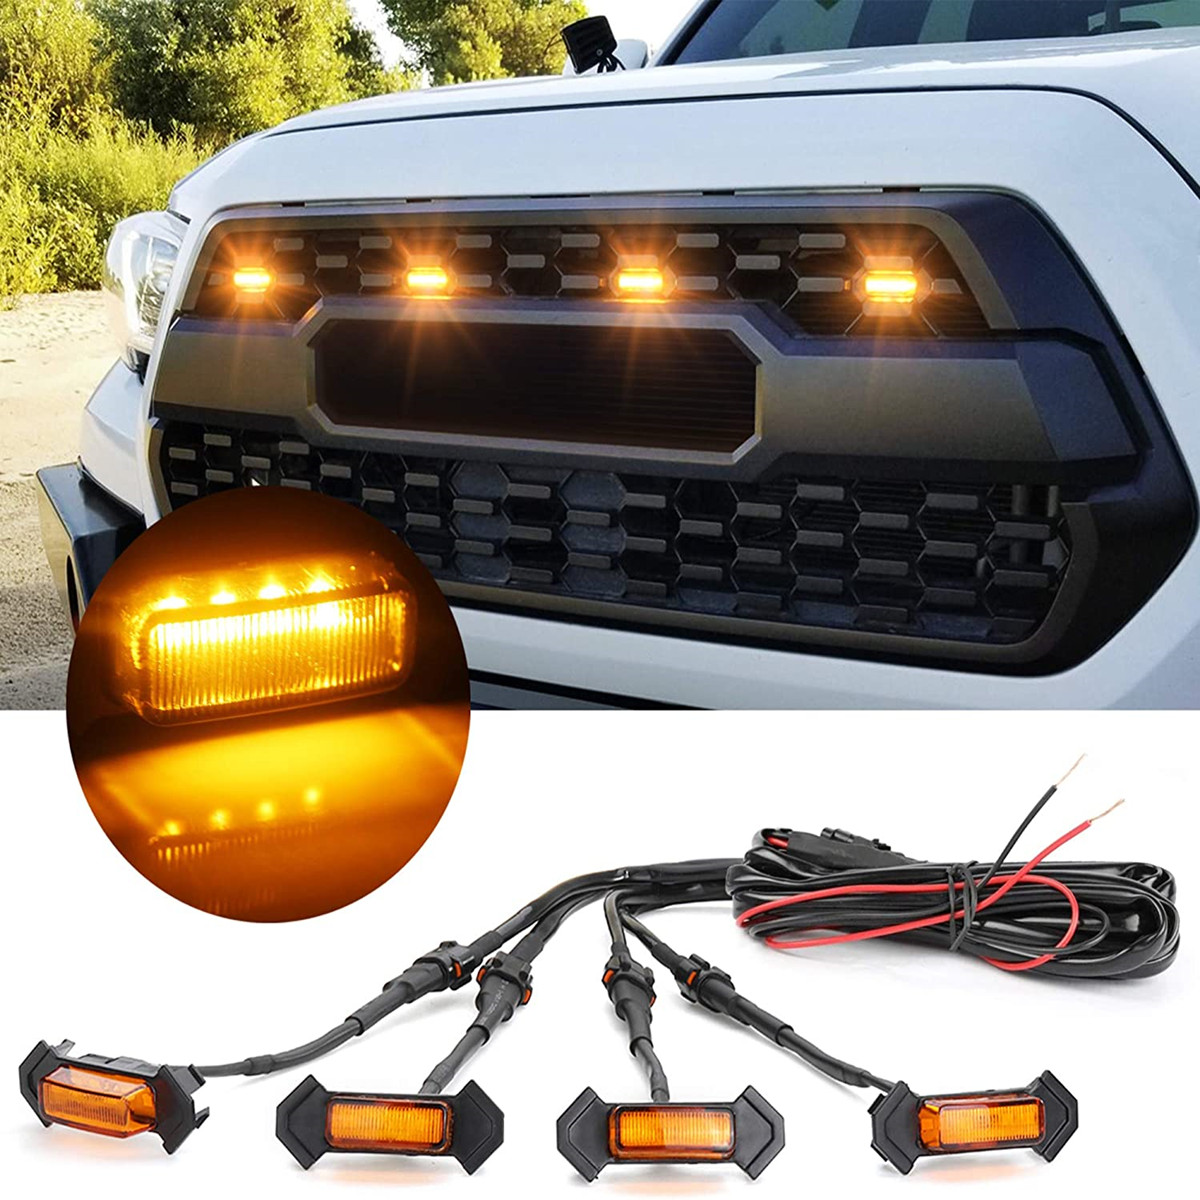 Auto LED Front Grill Lights High Brightness Amber Lamp for Tacoma 2016, 2017, 2018 TRD PRO Car Product Accessories